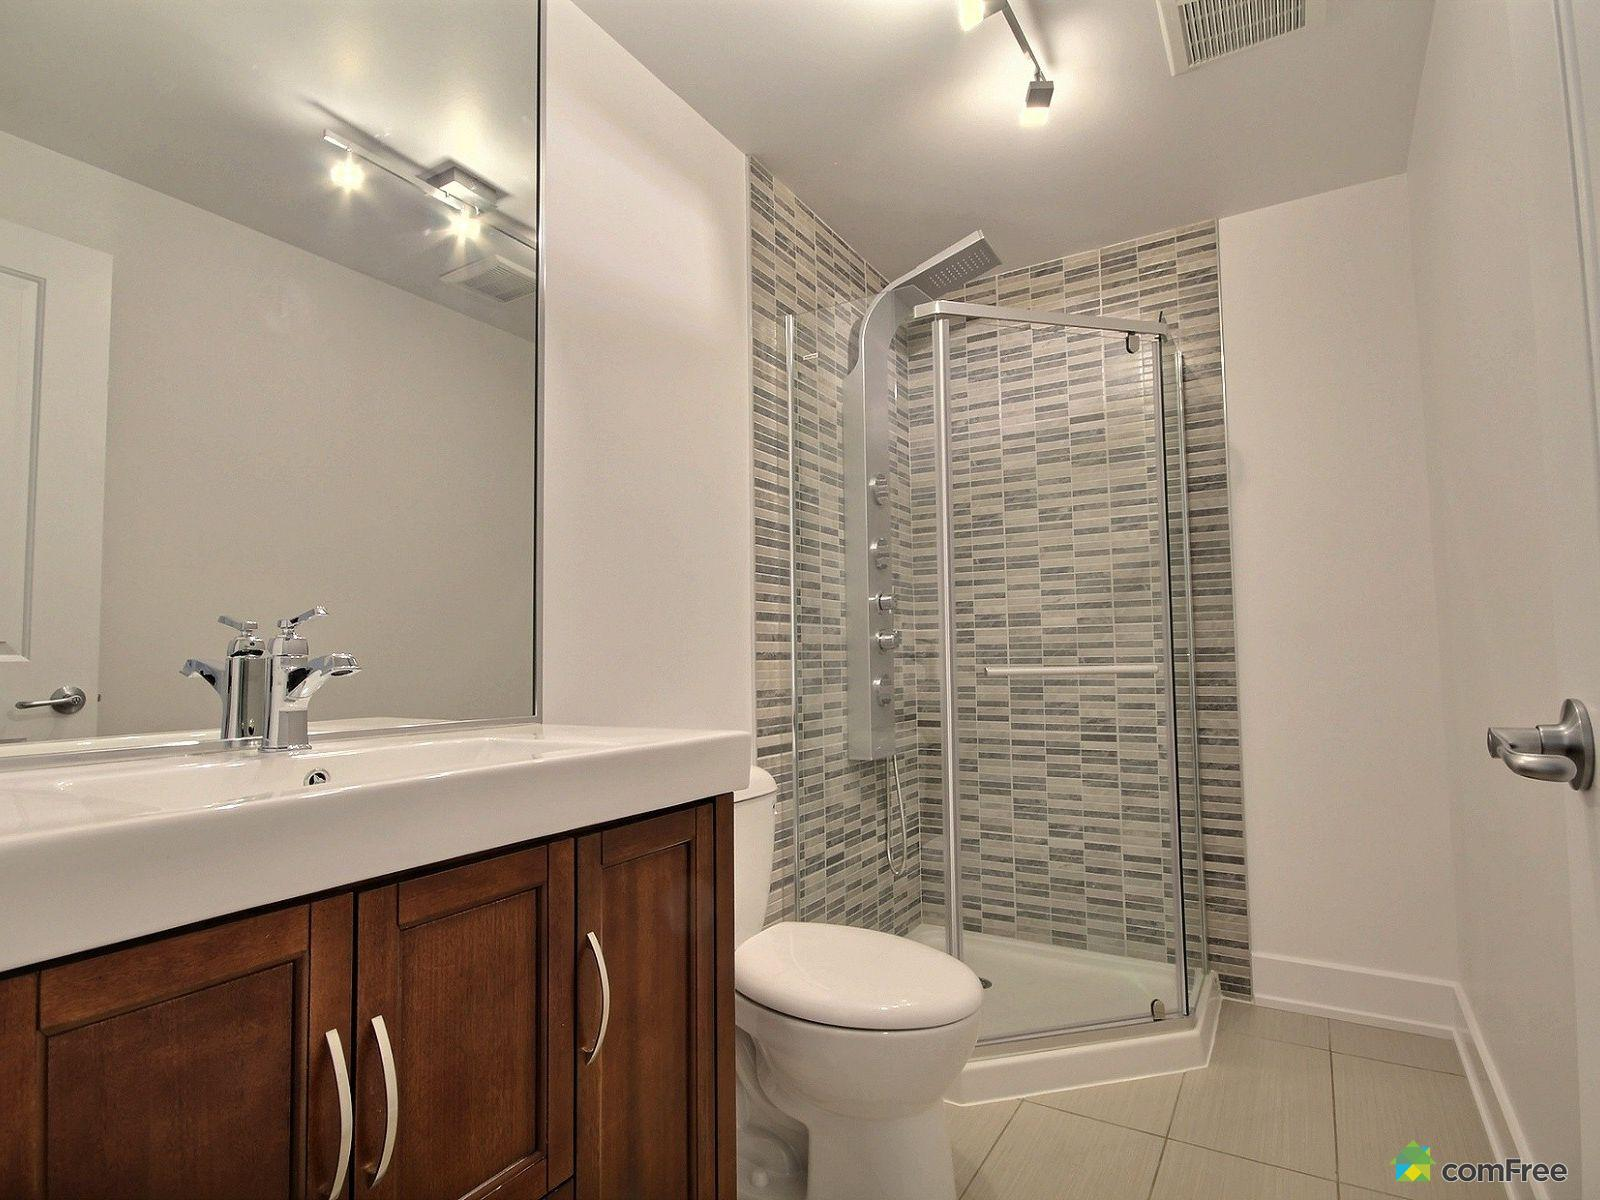 basement-bathroom-new-home-for-sale-rockland-ontario-1600-6589206.jpg